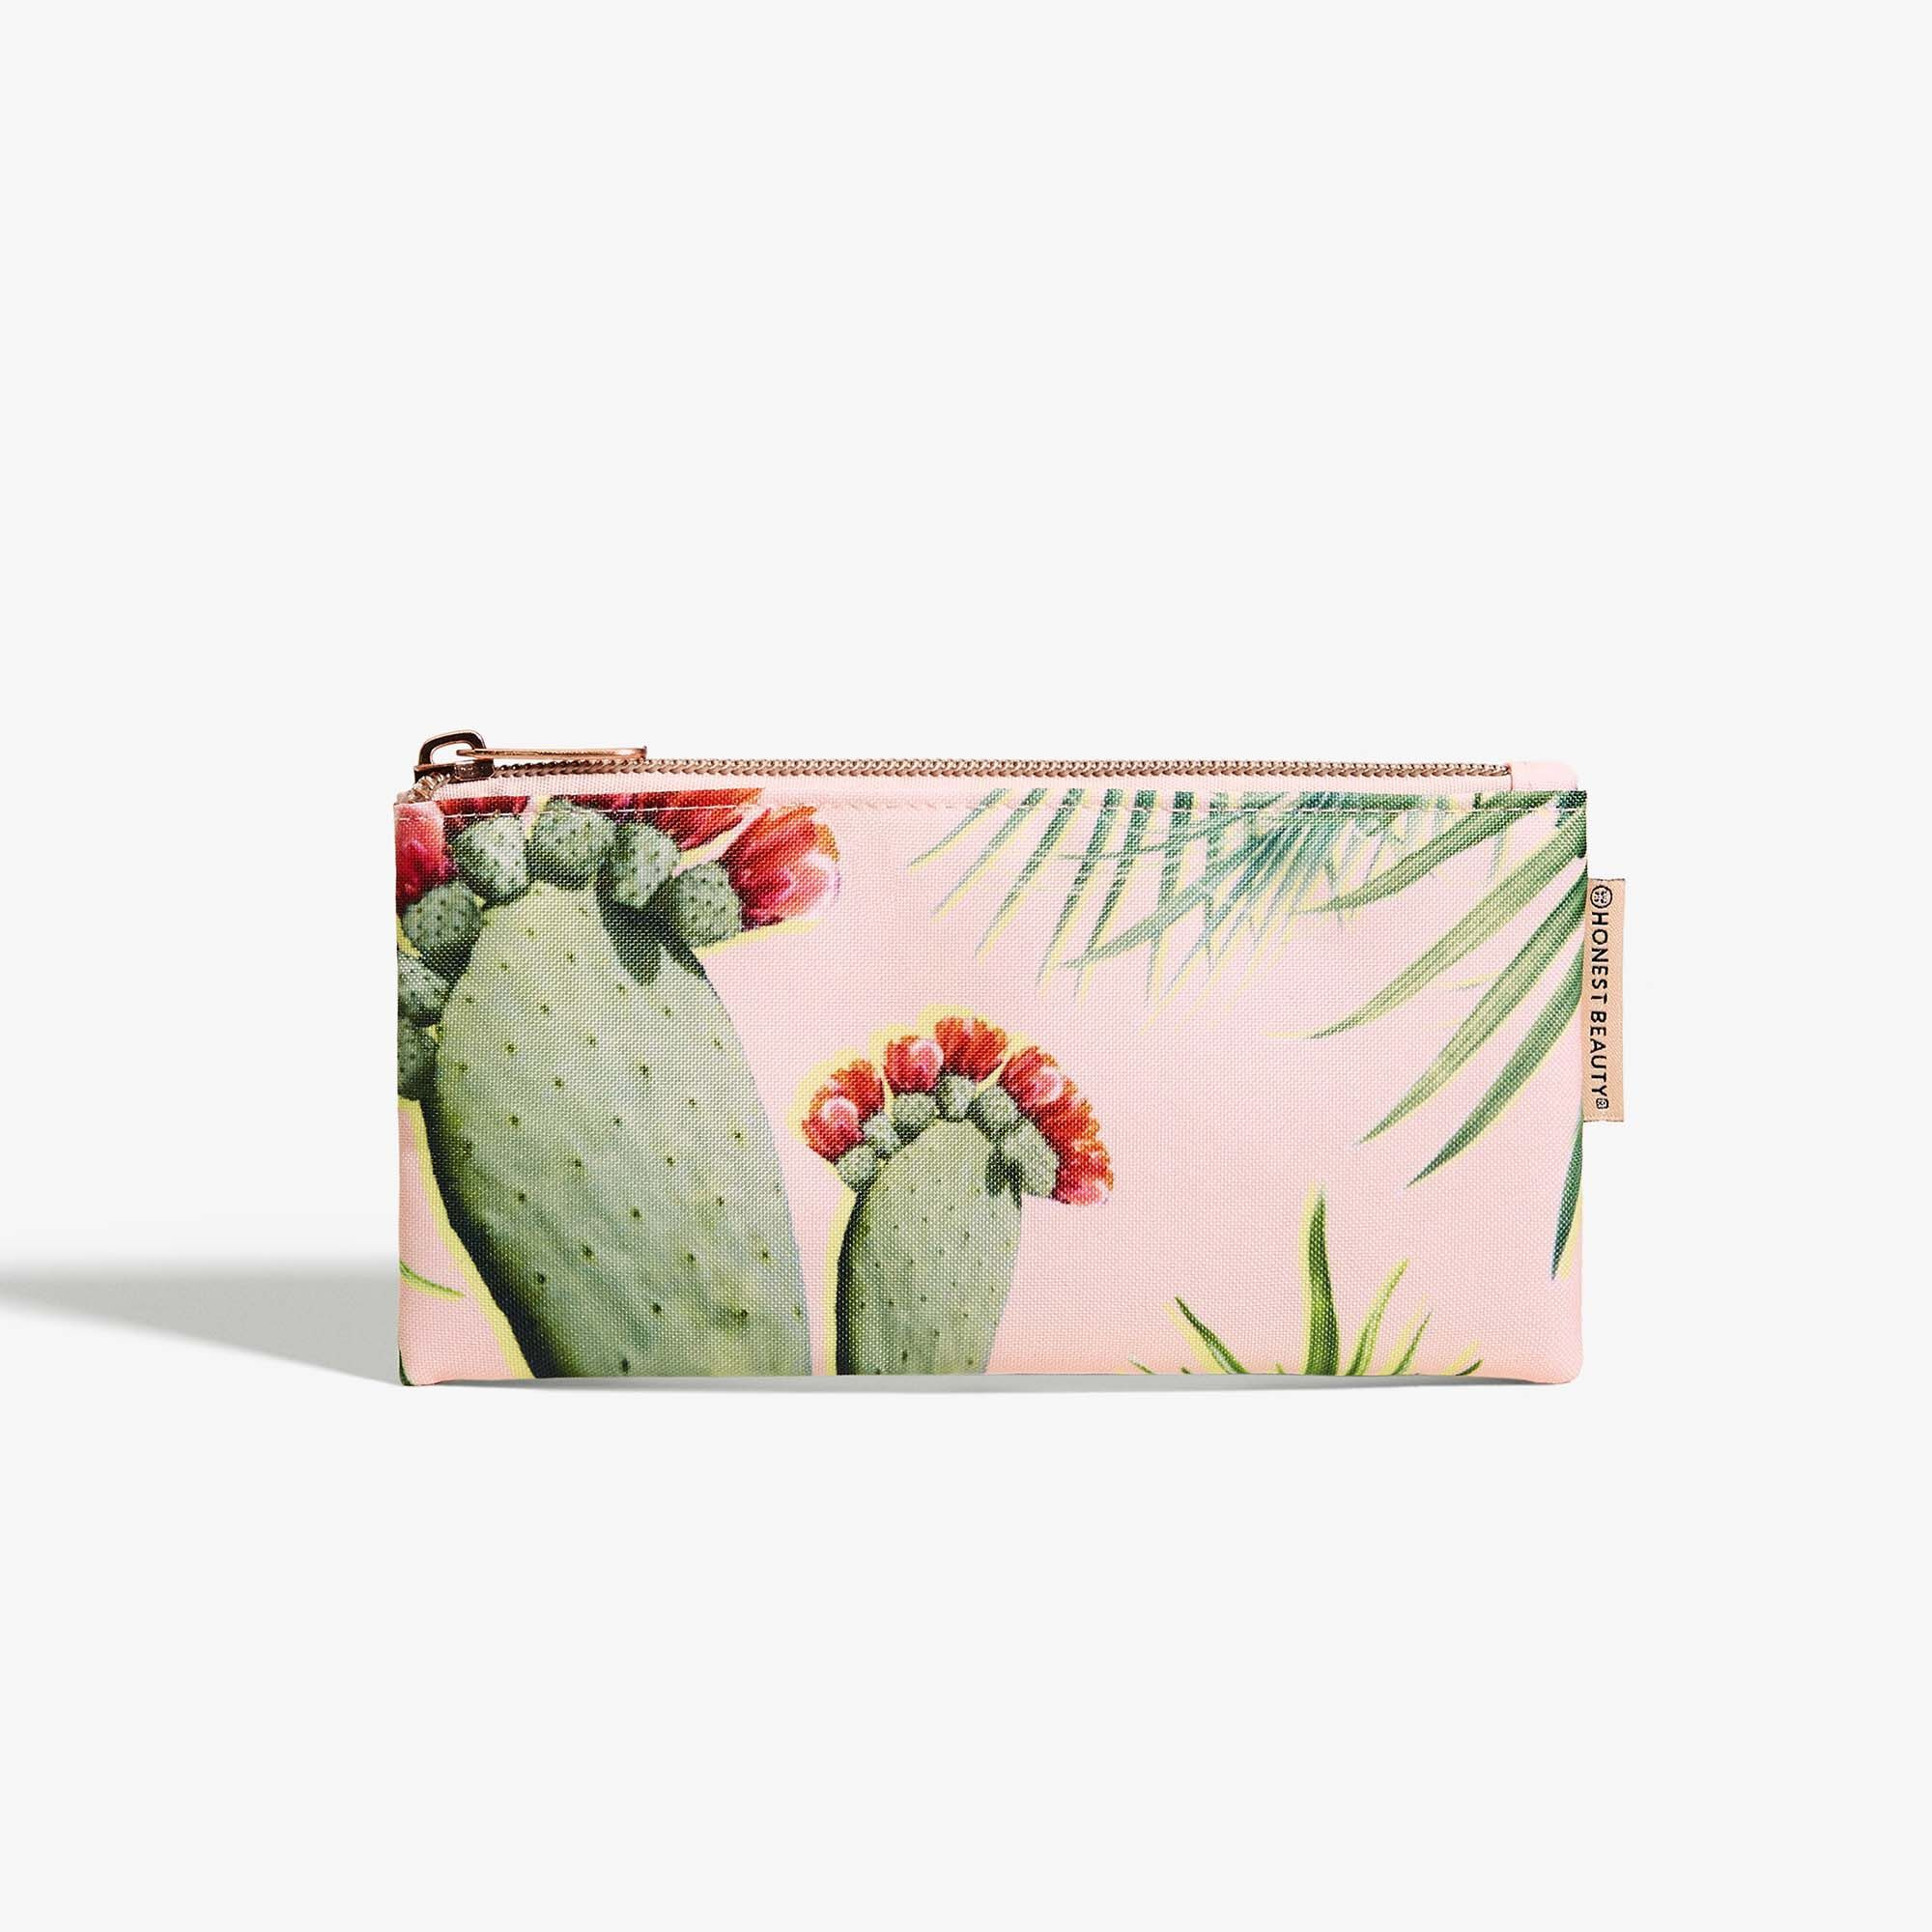 Palm Print Beauty Bag, Small